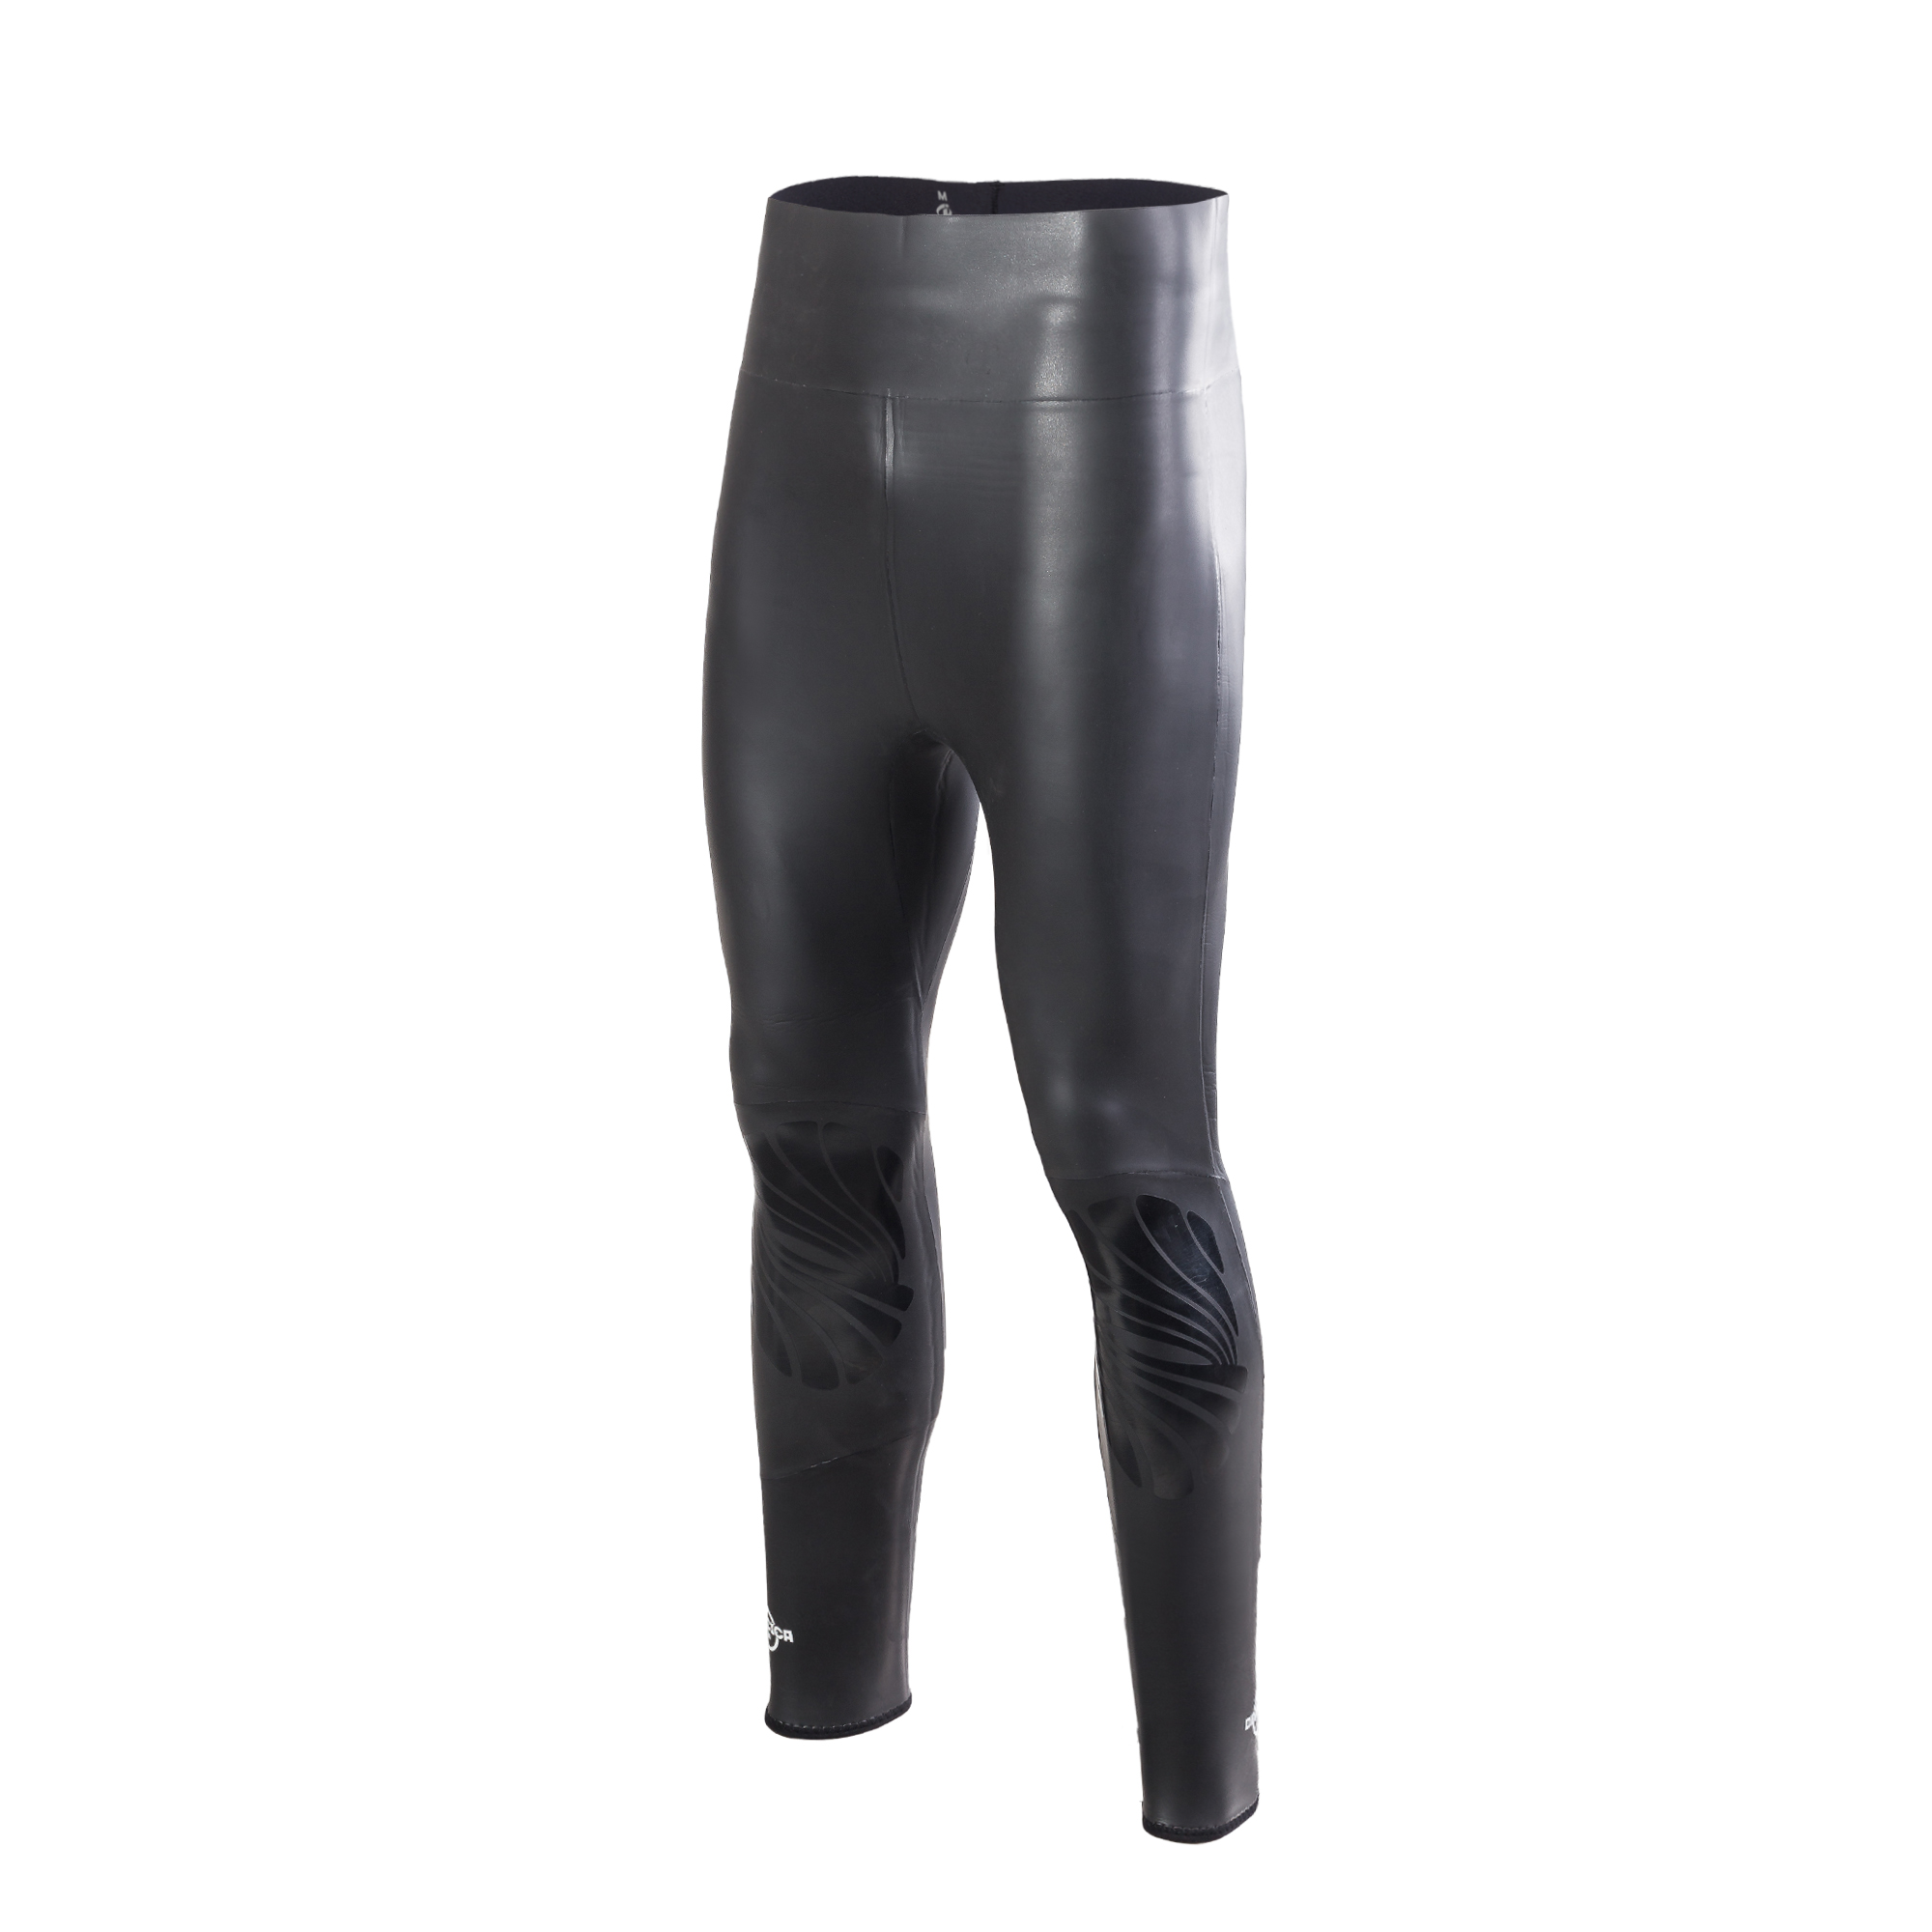 New Type Top Sale Long Surfing Swimming Pants Wetsuit 3mm Neoprene Wetsuit Pants